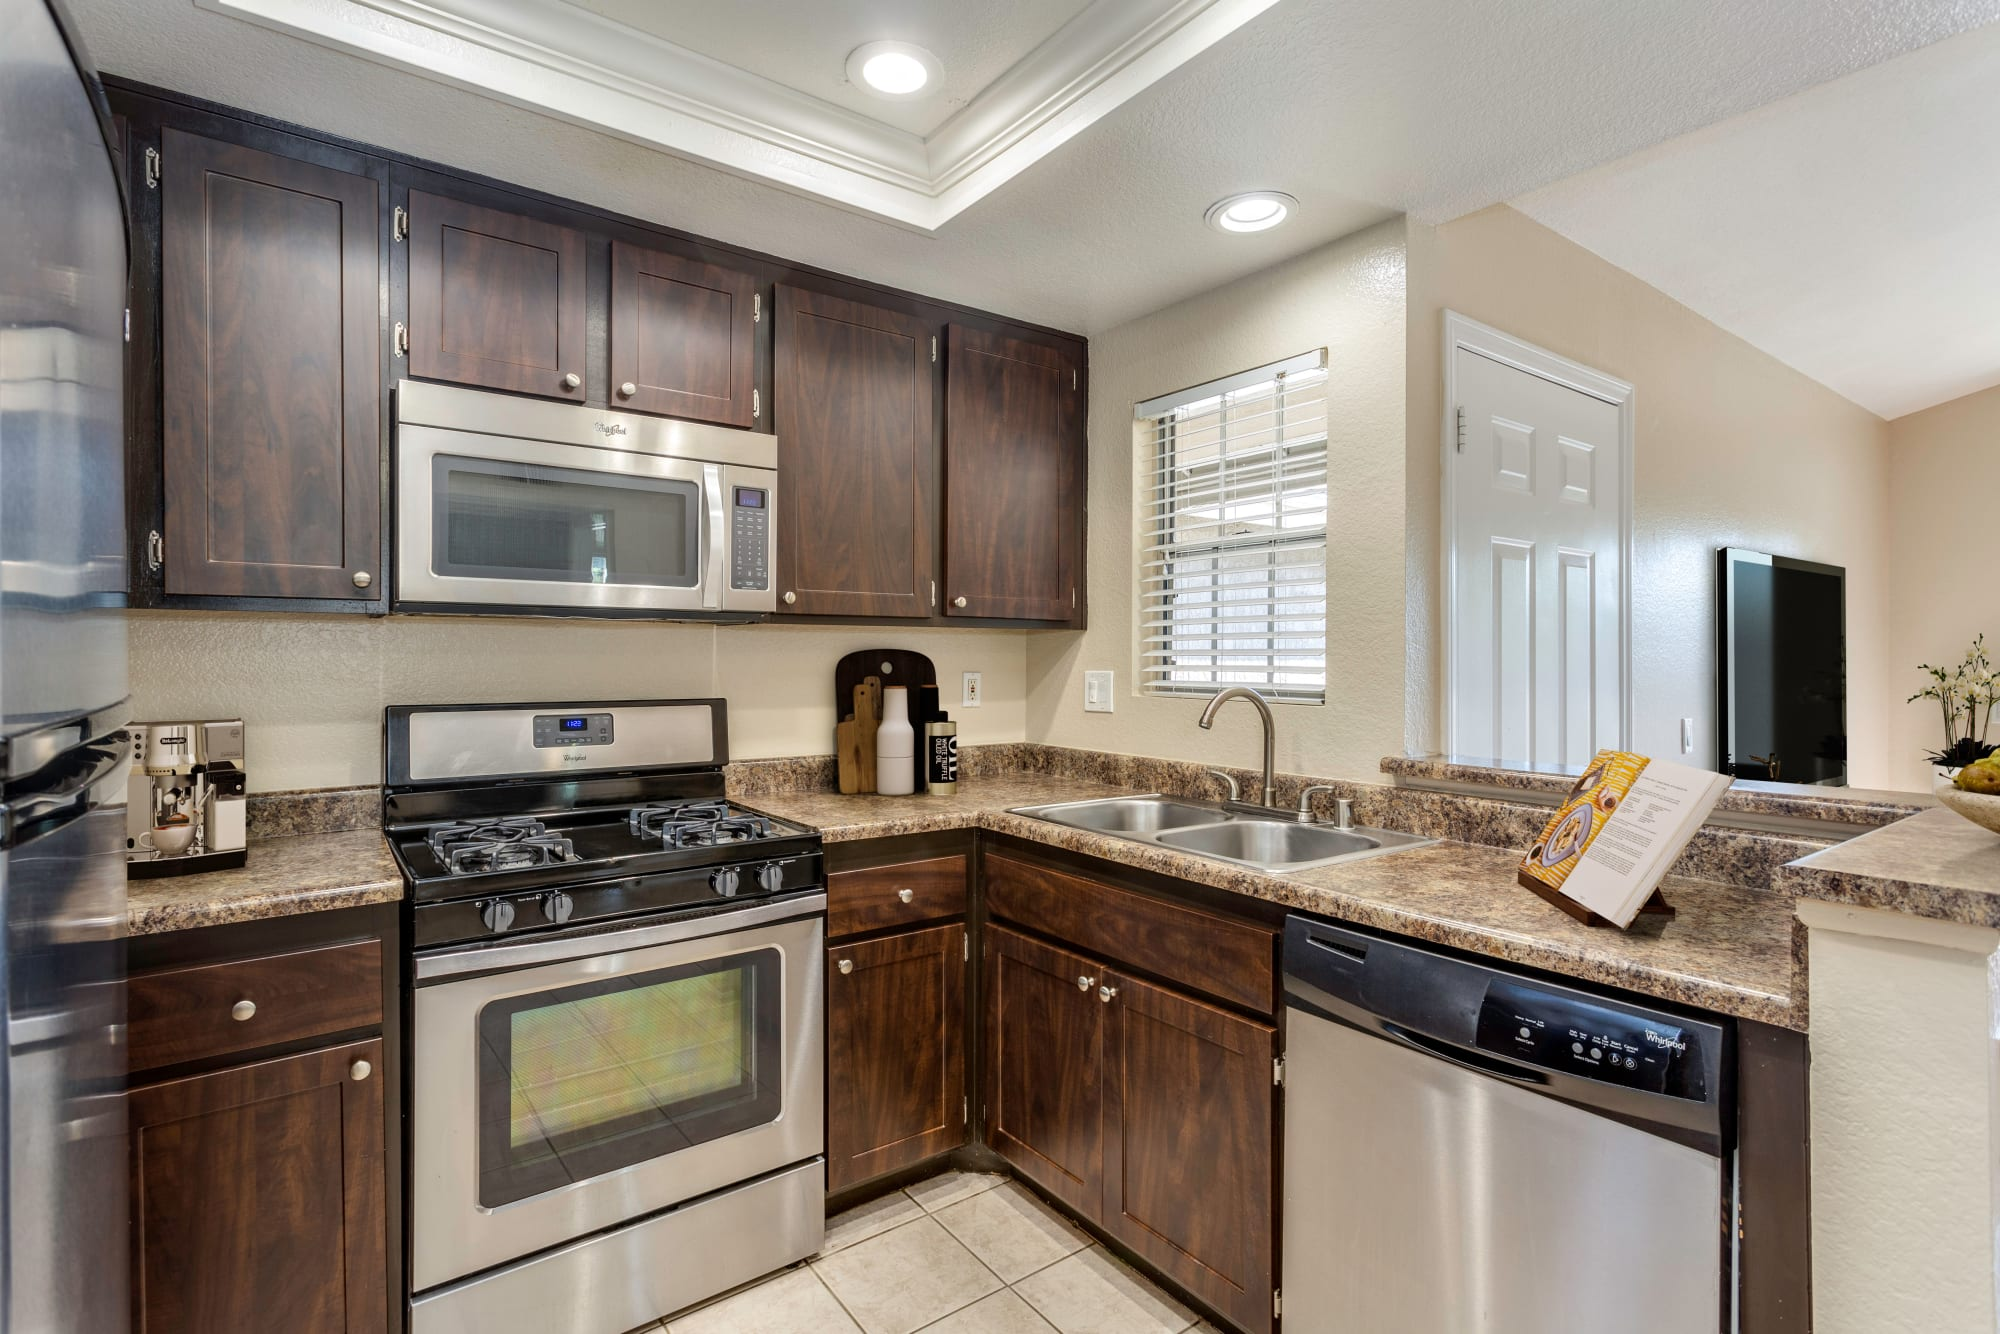 Renovated kitchen with brown cabinets at Village Oaks in Chino Hills, California